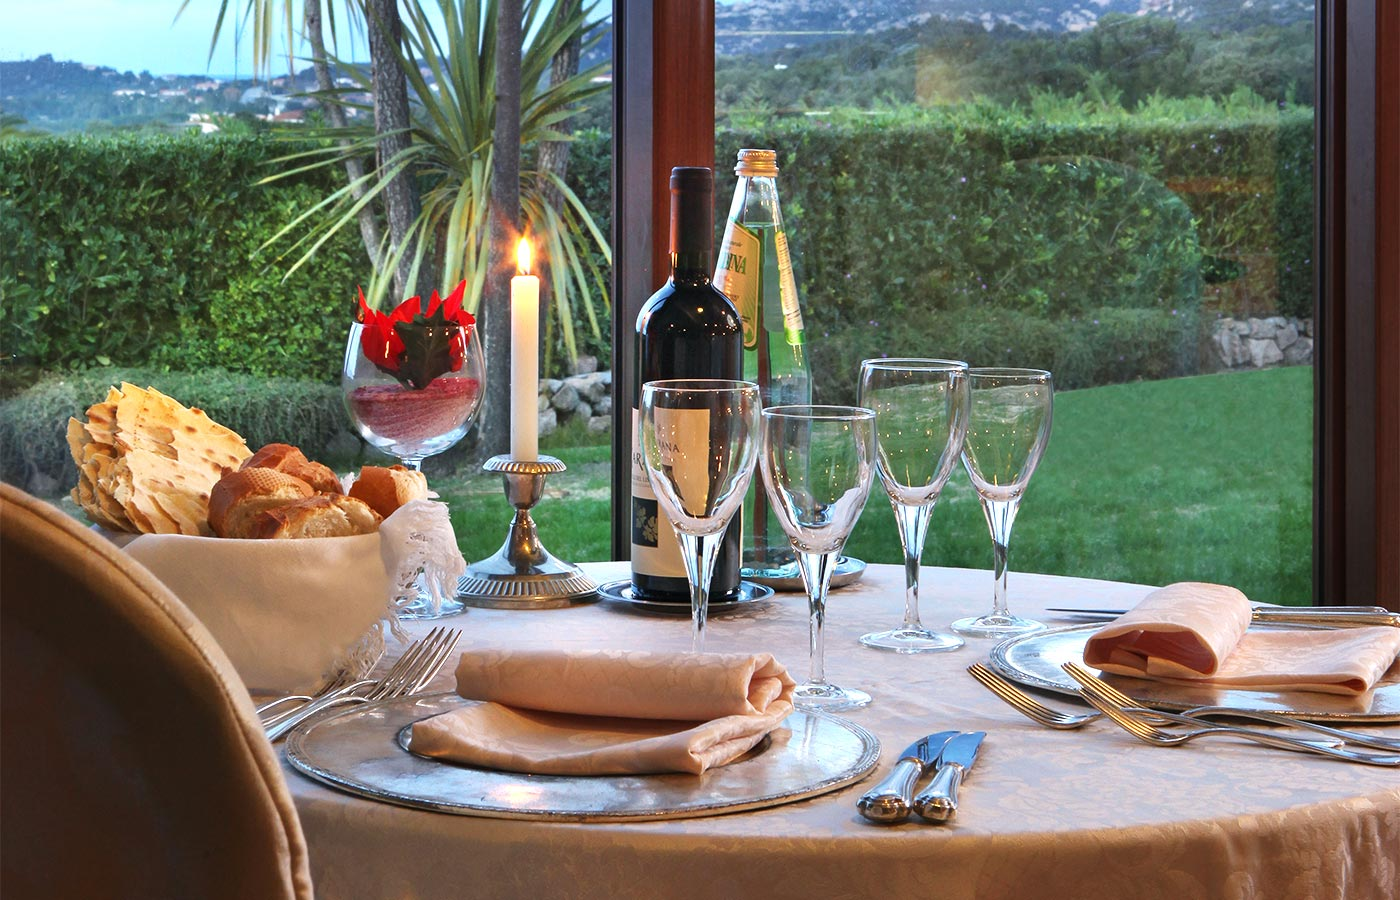 A refined dinner in one of the best restaurants of Costa Smeralda